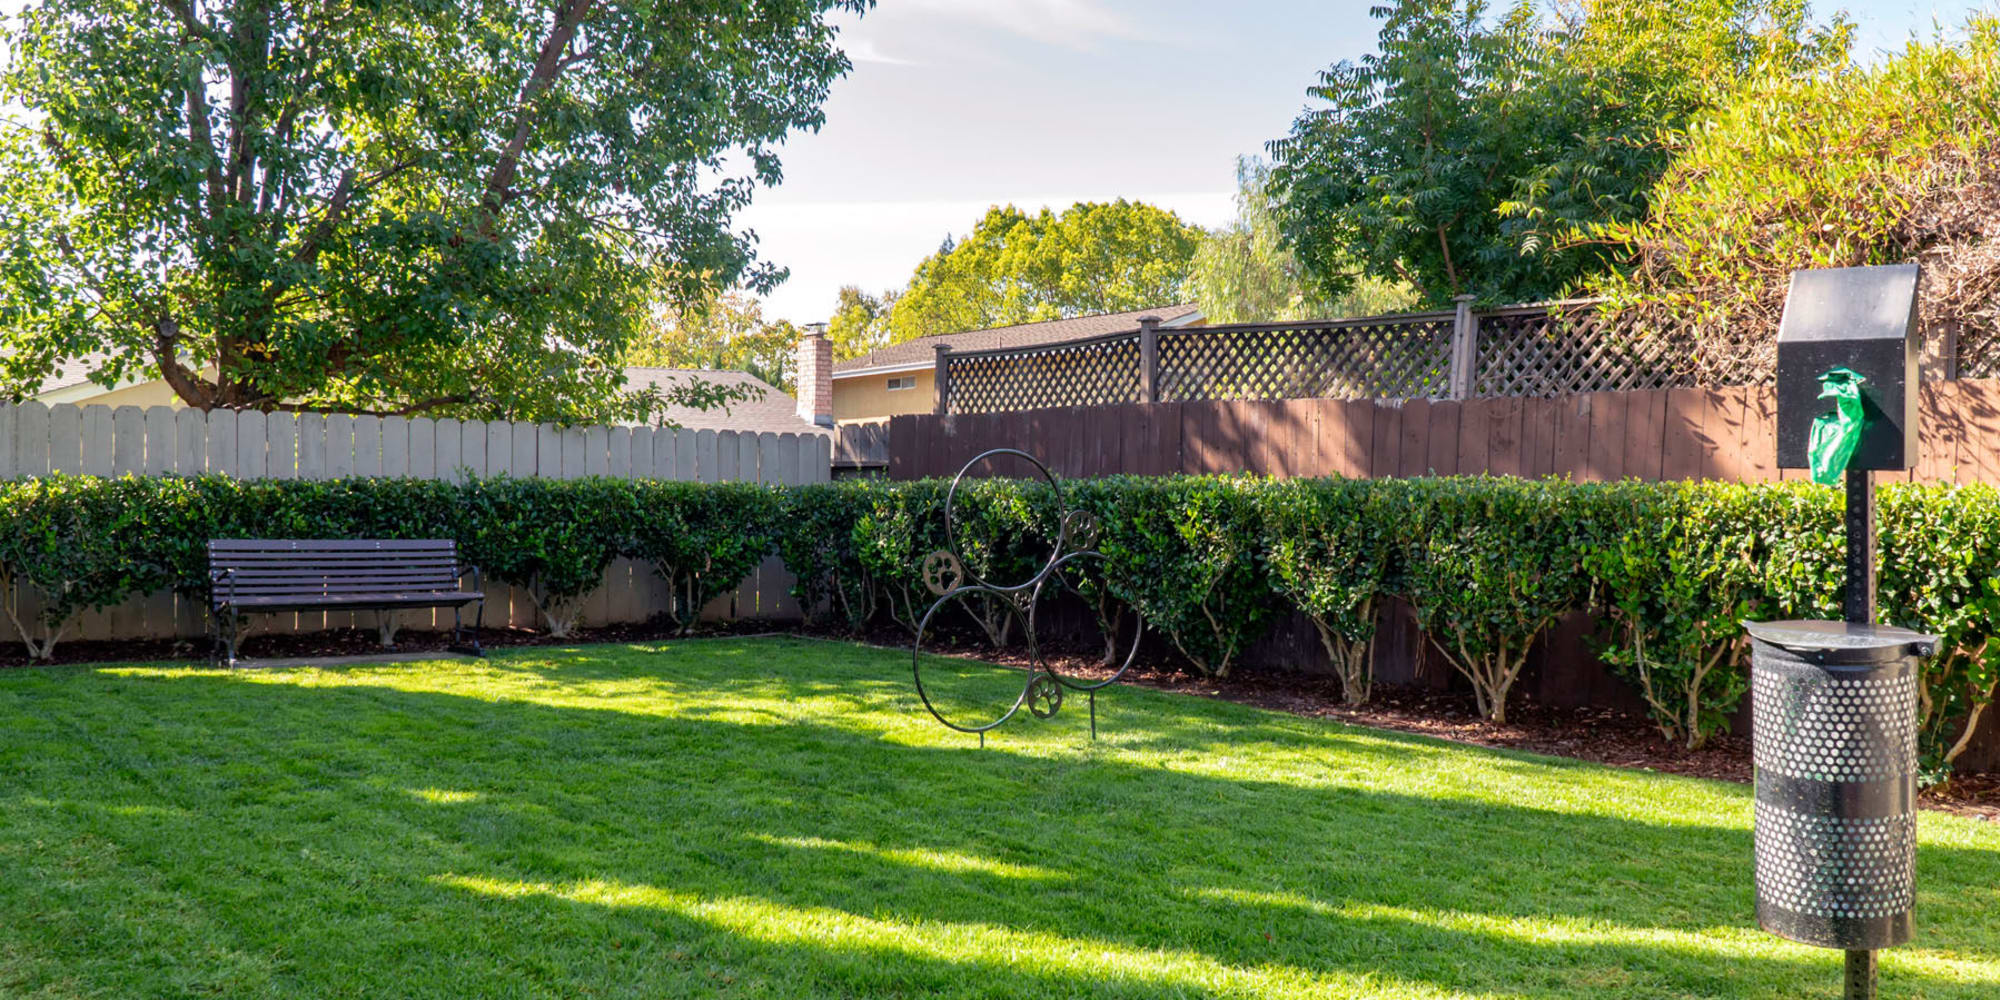 Green grass for your dog to play on at the onsite bark park at Pleasanton Place Apartment Homes in Pleasanton, California